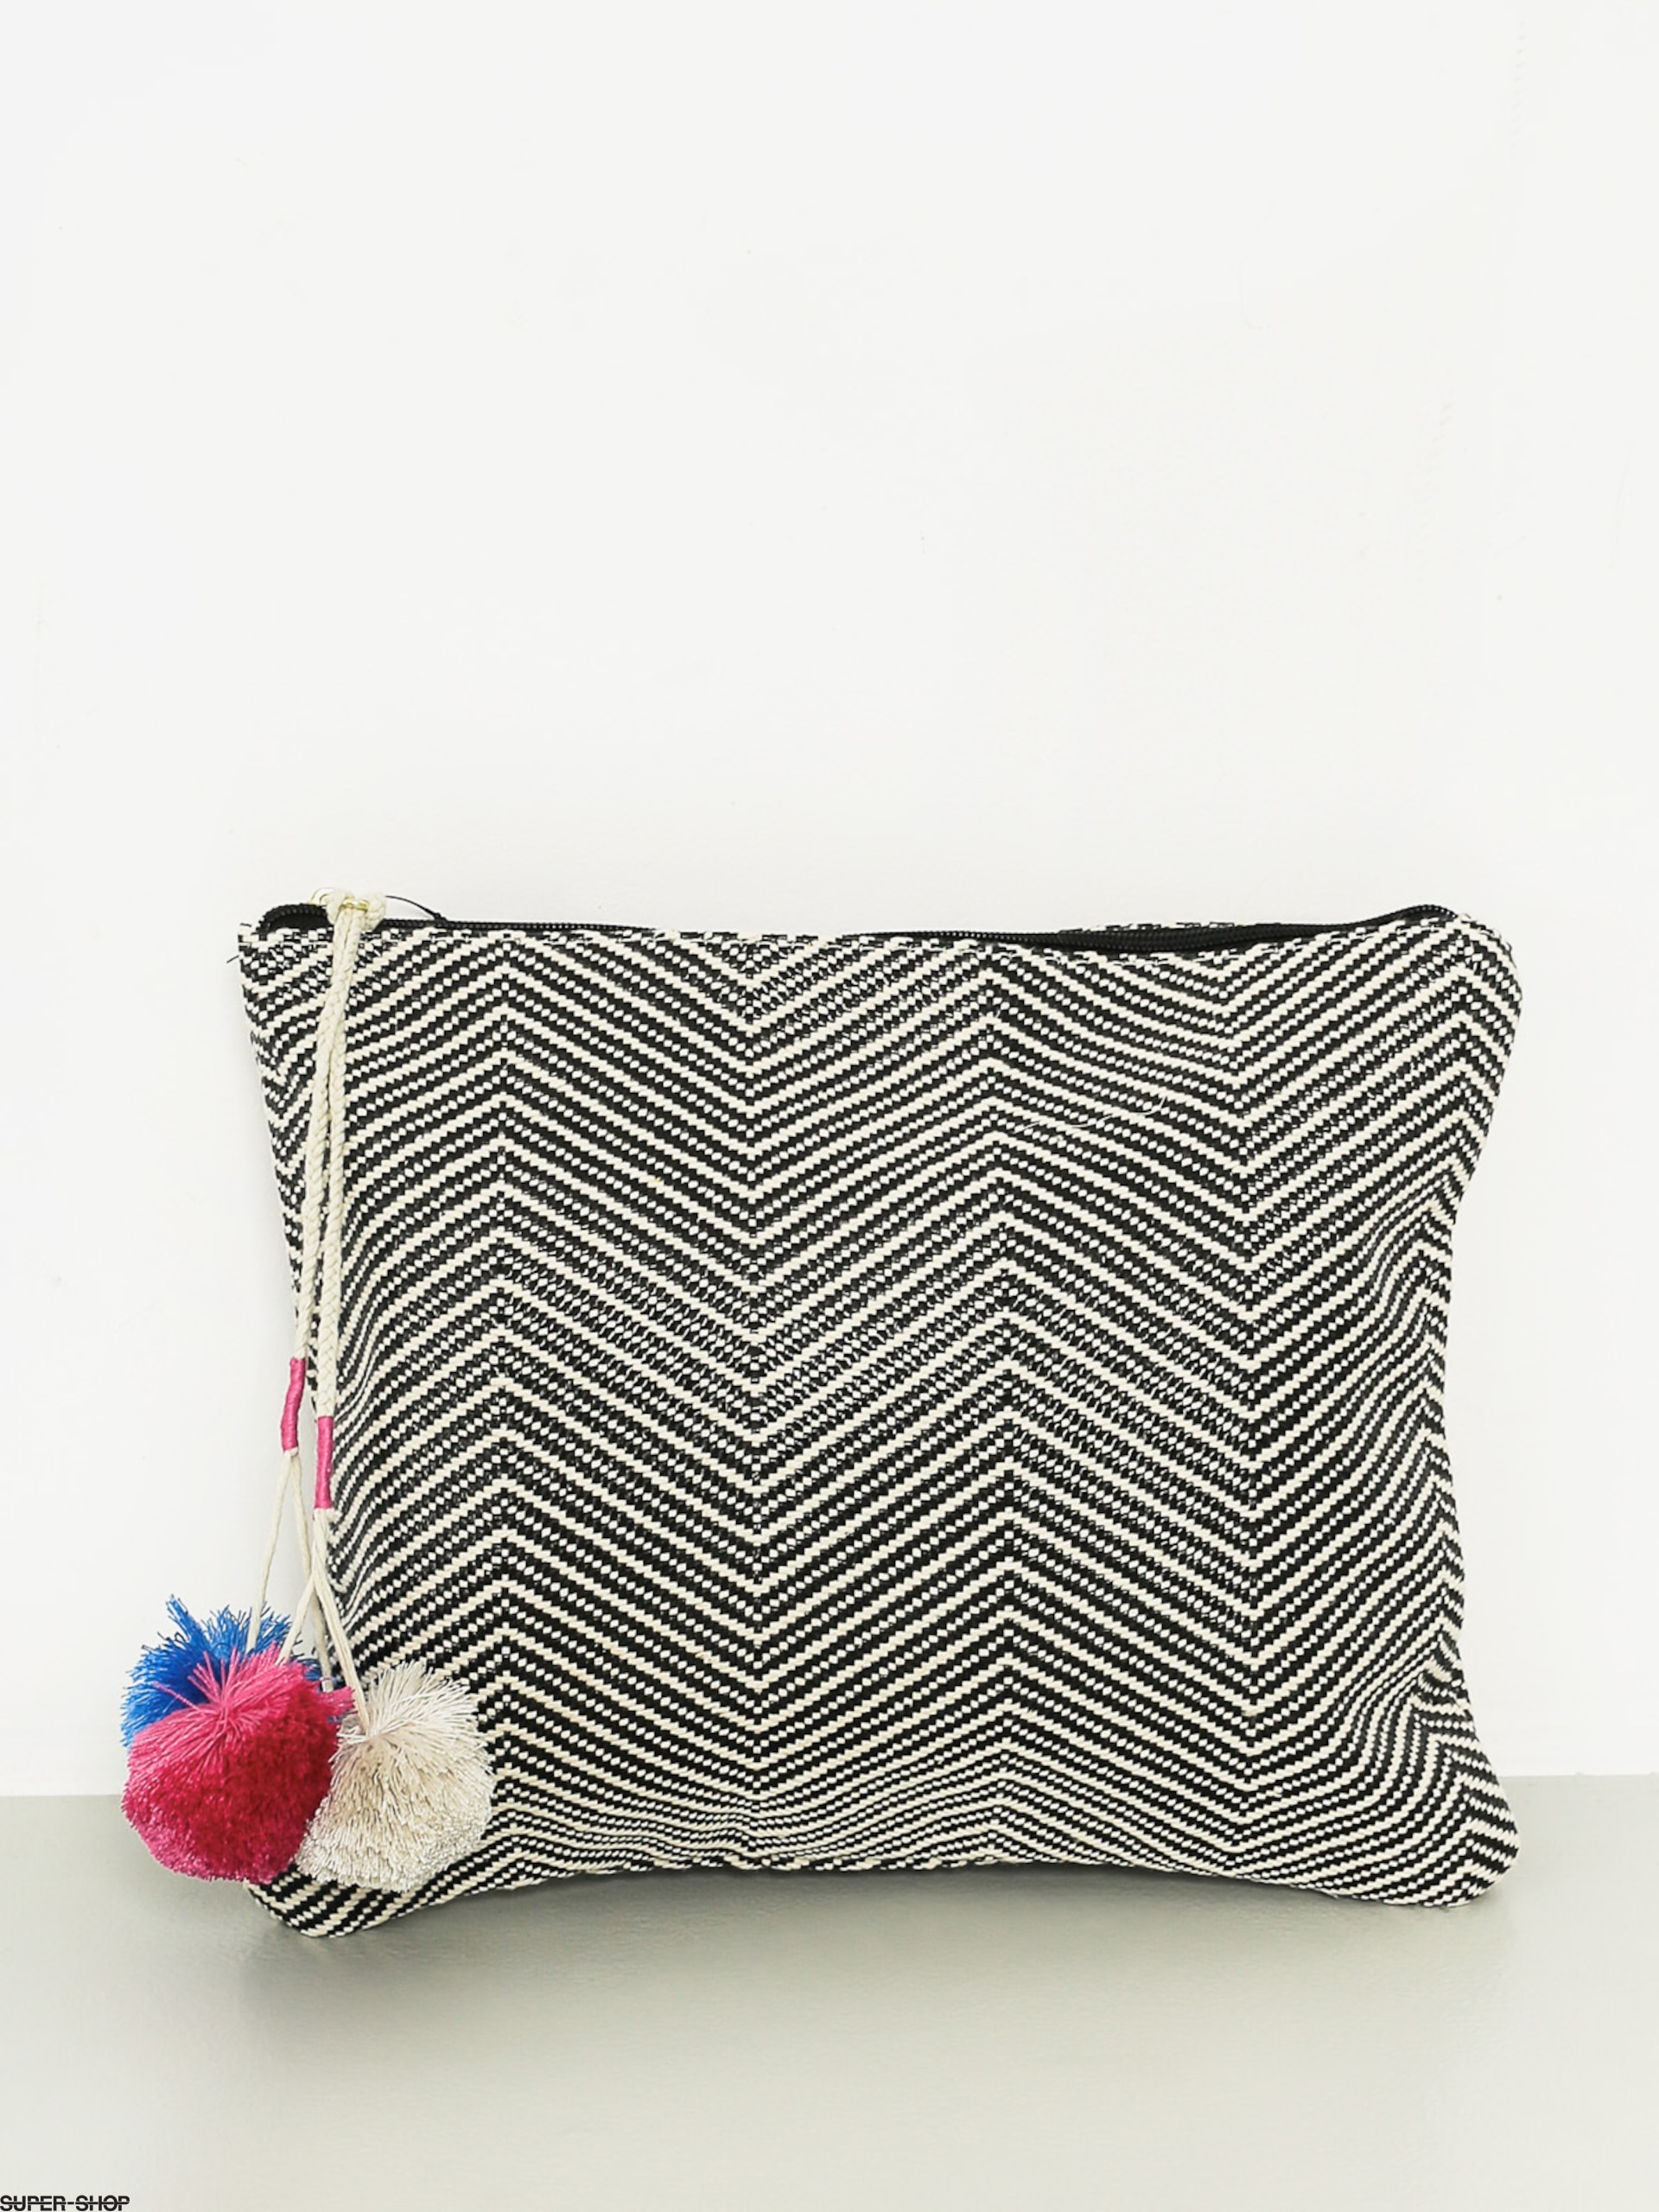 Volcom Handbag The Market Clutch (blk)